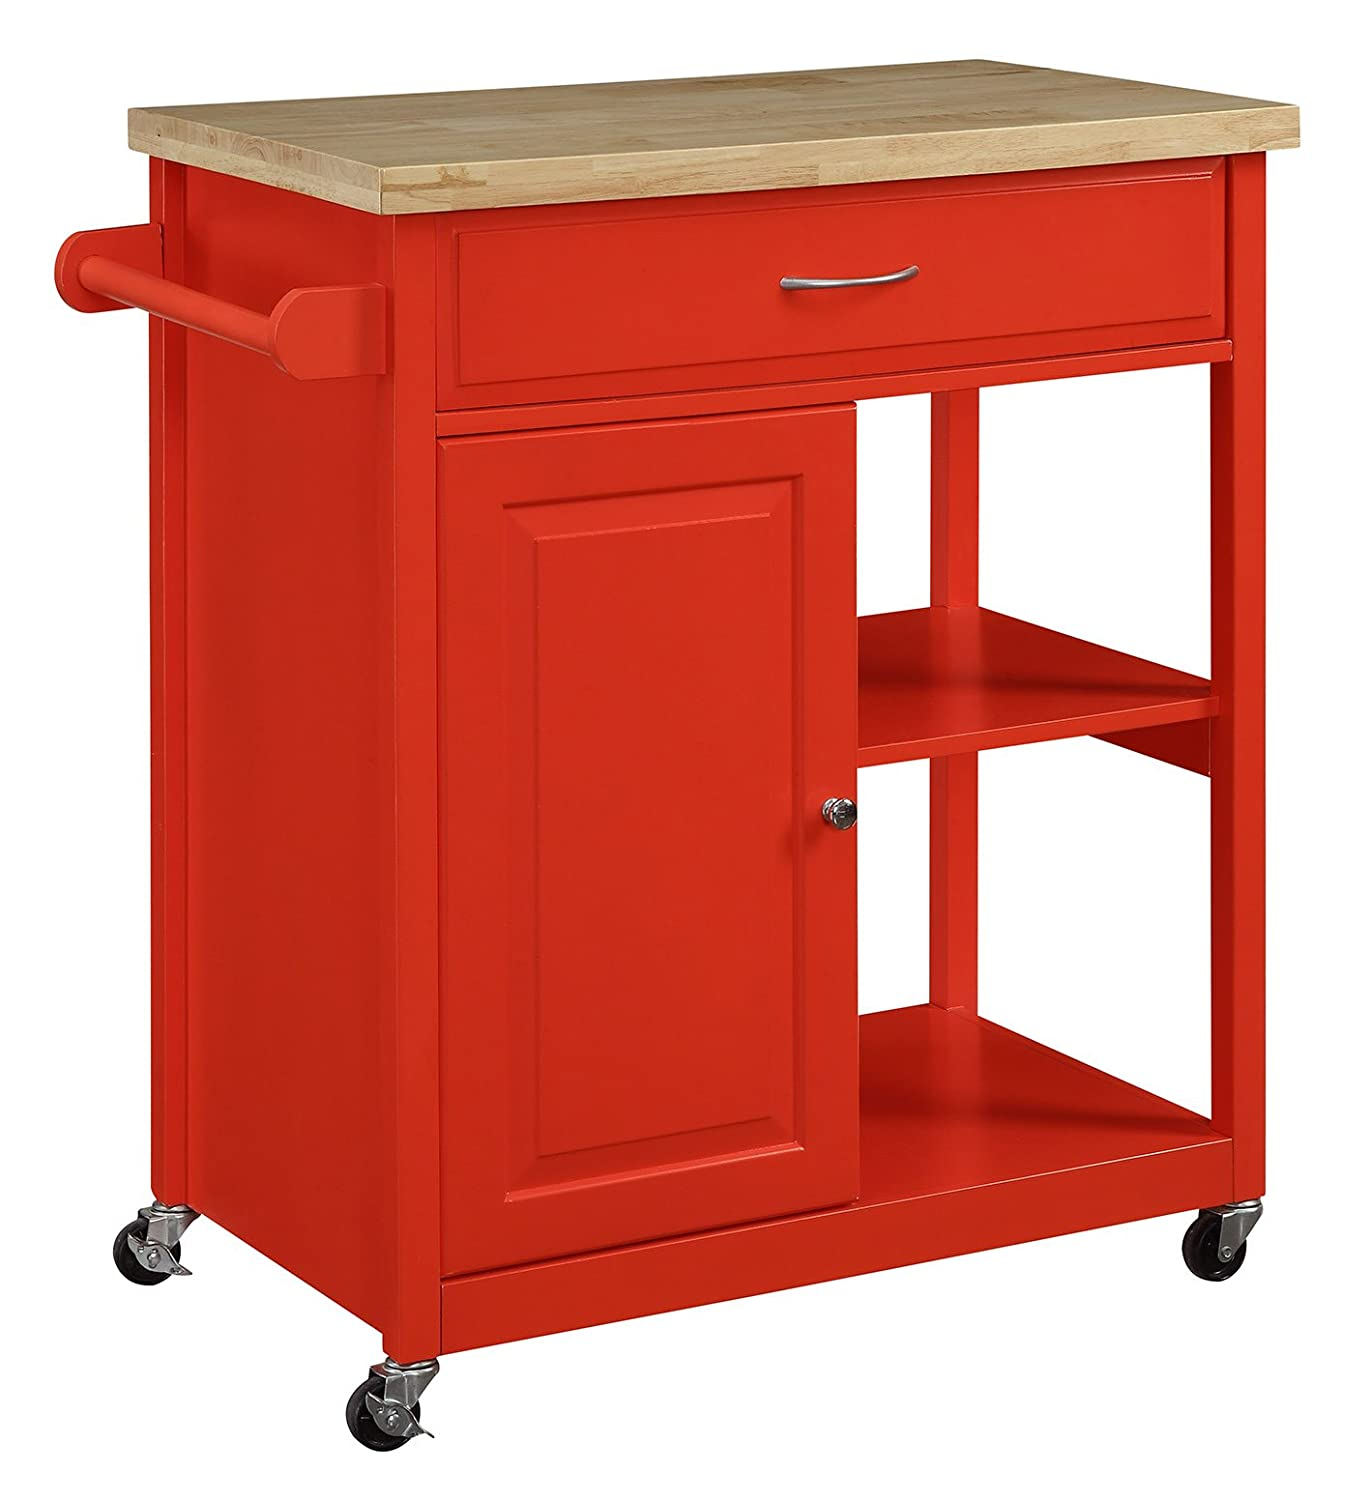 amazon com   oliver and smith   nashville collection   mobile kitchen island cart on wheels   red   natural oak butcher block   30   w x 18   l x 36   h     amazon com   oliver and smith   nashville collection   mobile      rh   amazon com